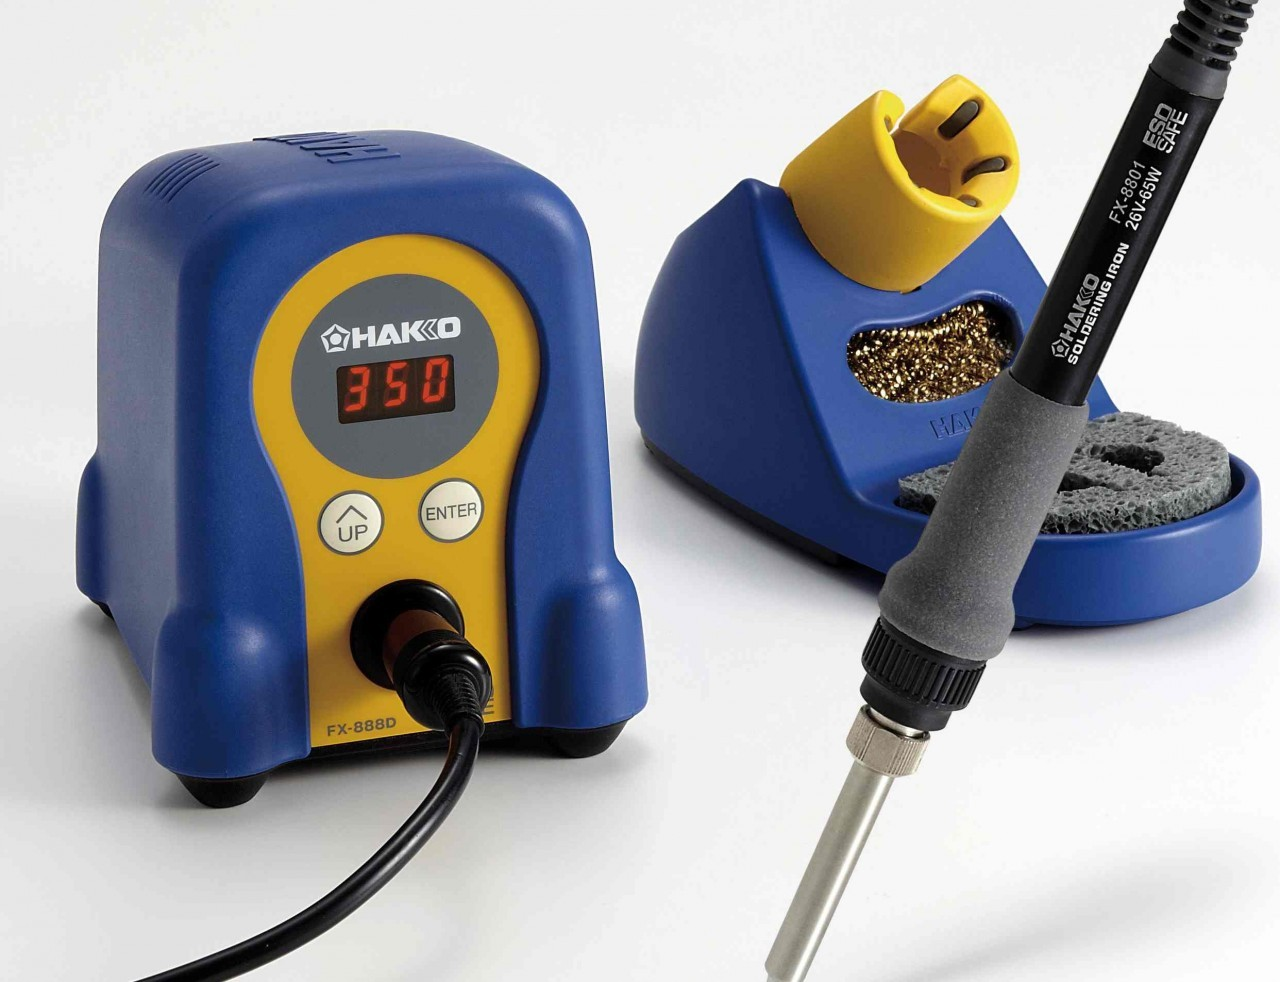 Diy Soldering Station Schematic further Solder station further Diy Soldering Station With Hakko Fx 888 Iron together with Tools Hardware Soldering Supplies C 454 463 additionally Asweeoah 5s. on diy soldering station with hakko fx 888 iron